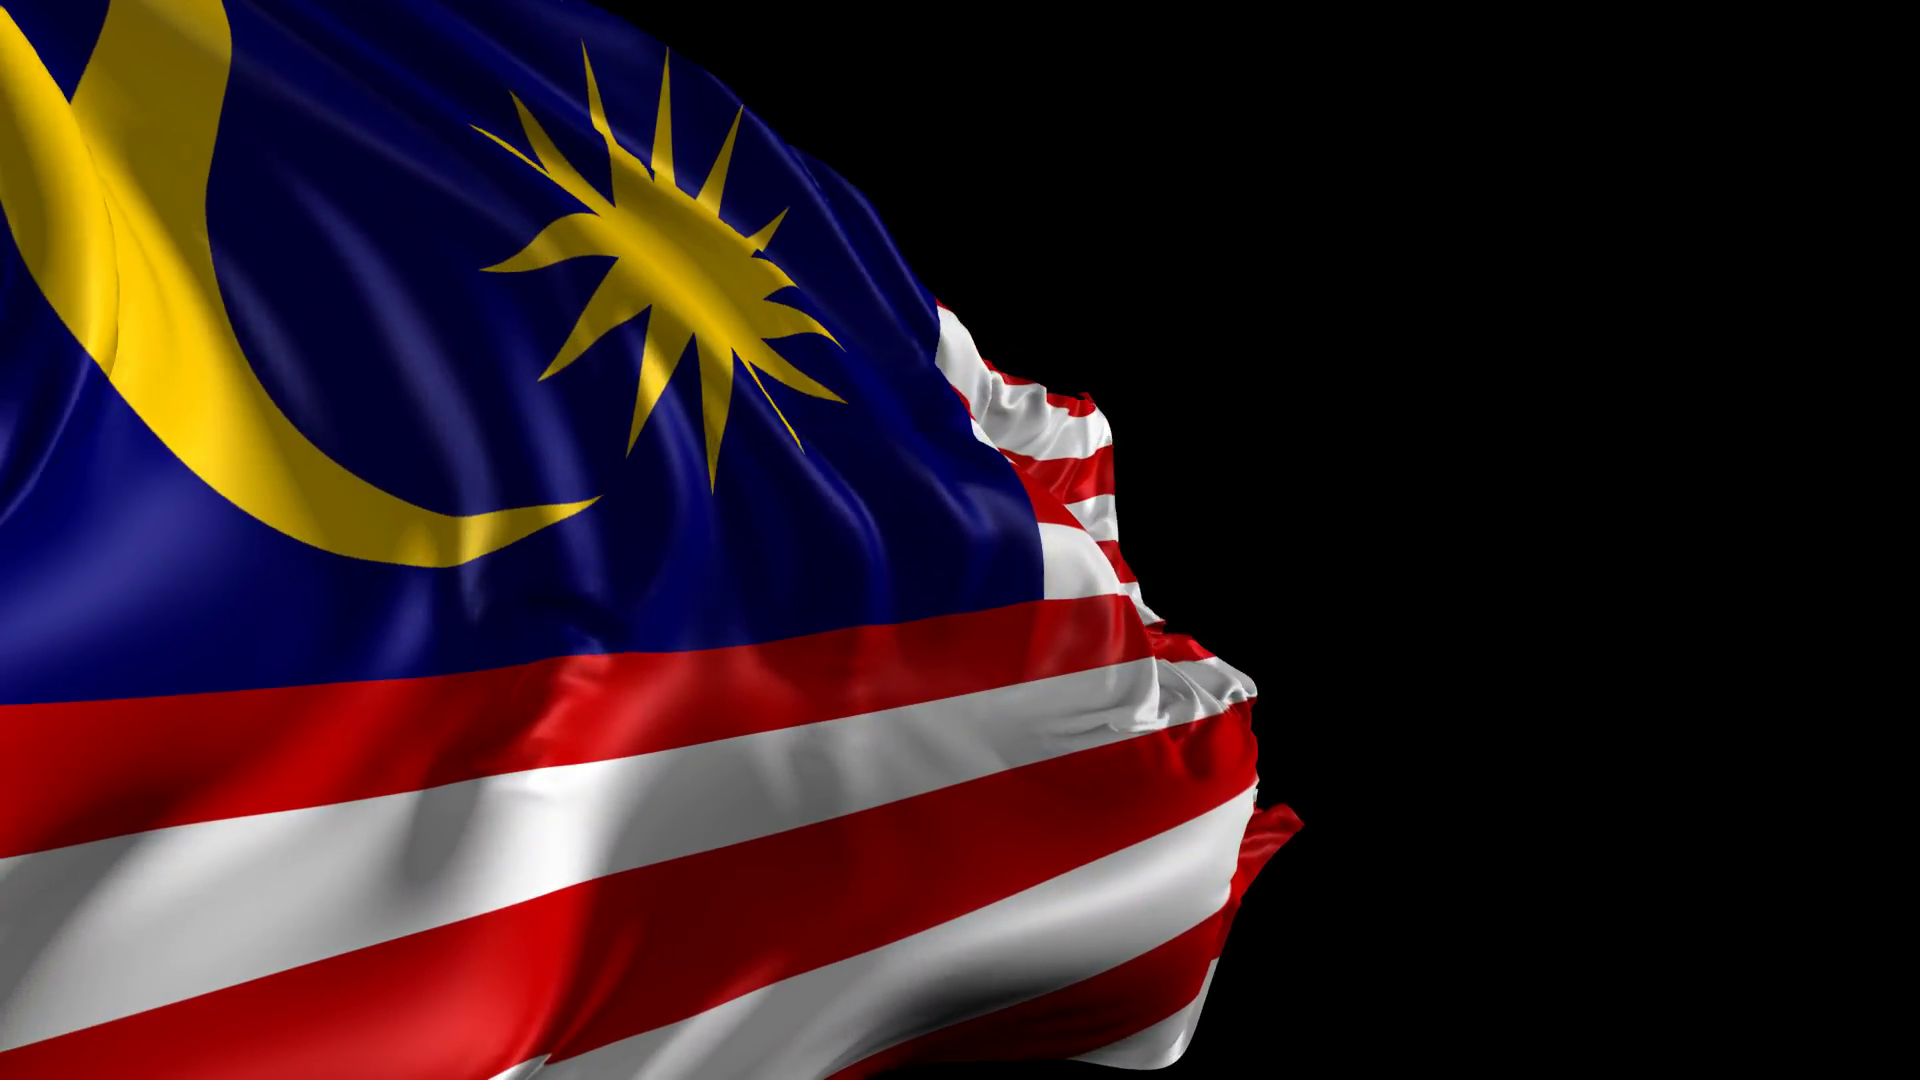 Flag of Malaysia  Beautiful 3d animation of the Malaysia flag with 1920x1080